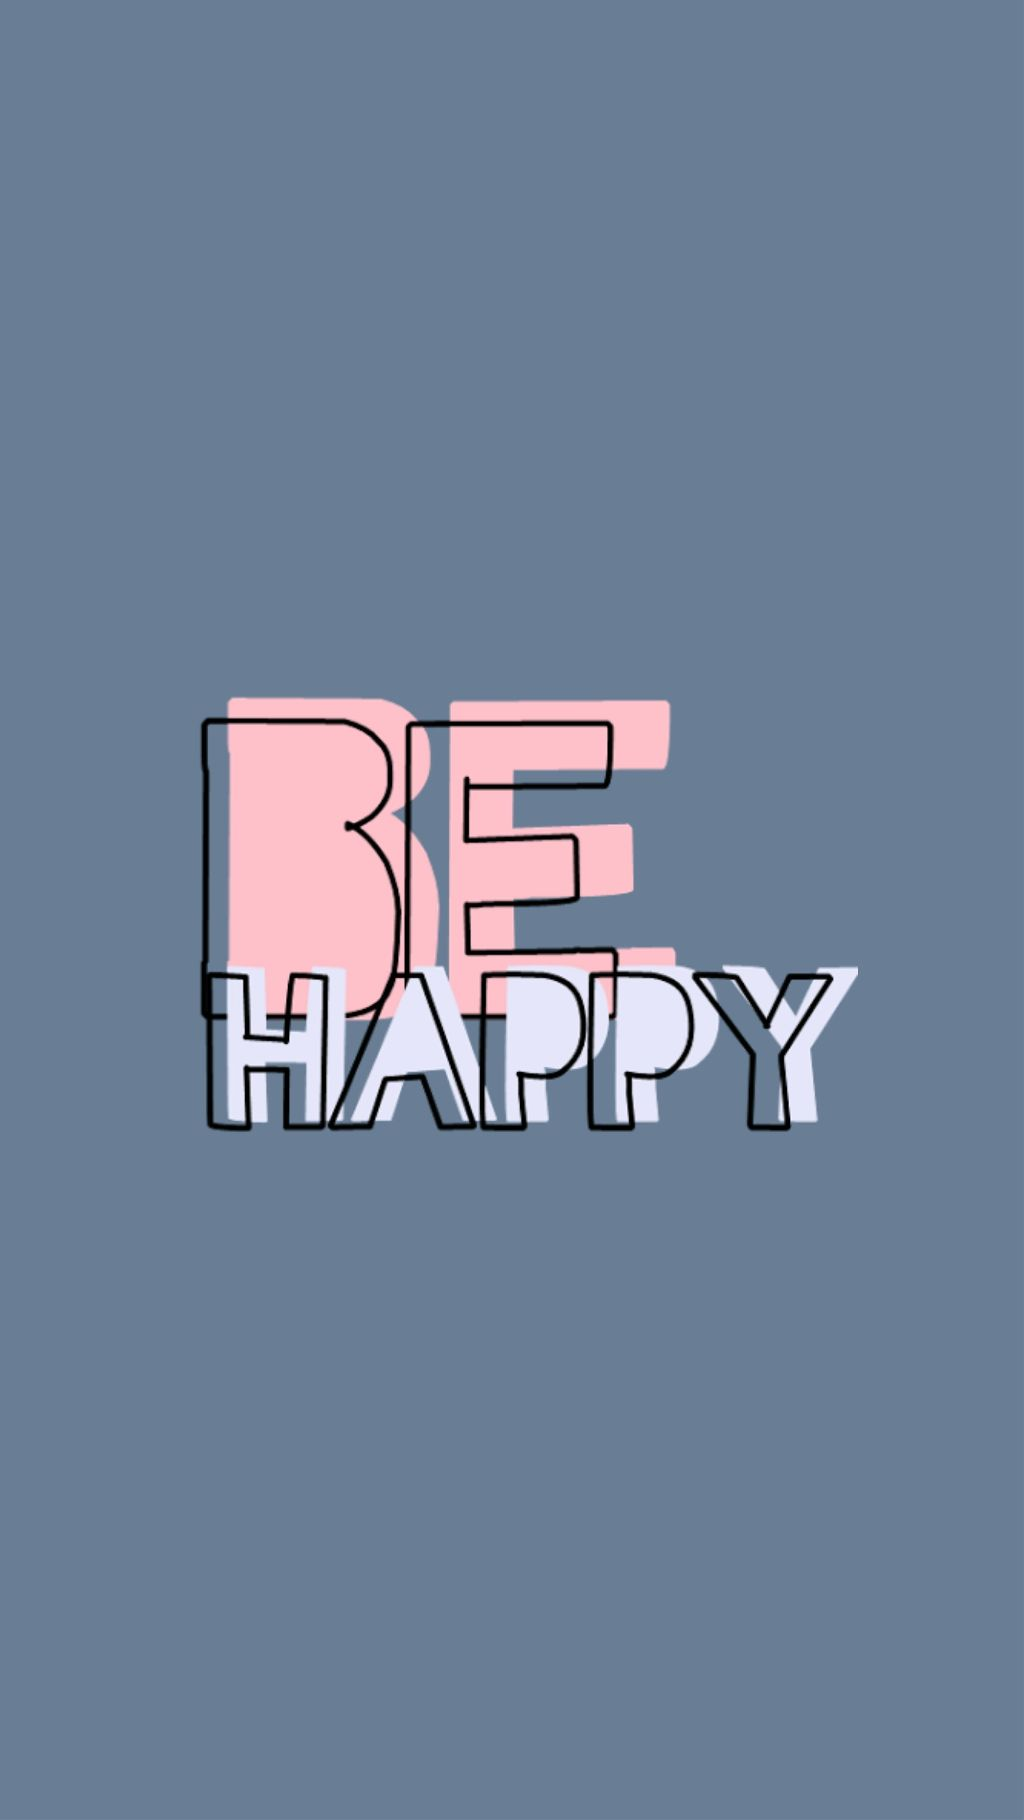 FreeToEdit wallpaper blue pink quotes behappy cute beau...